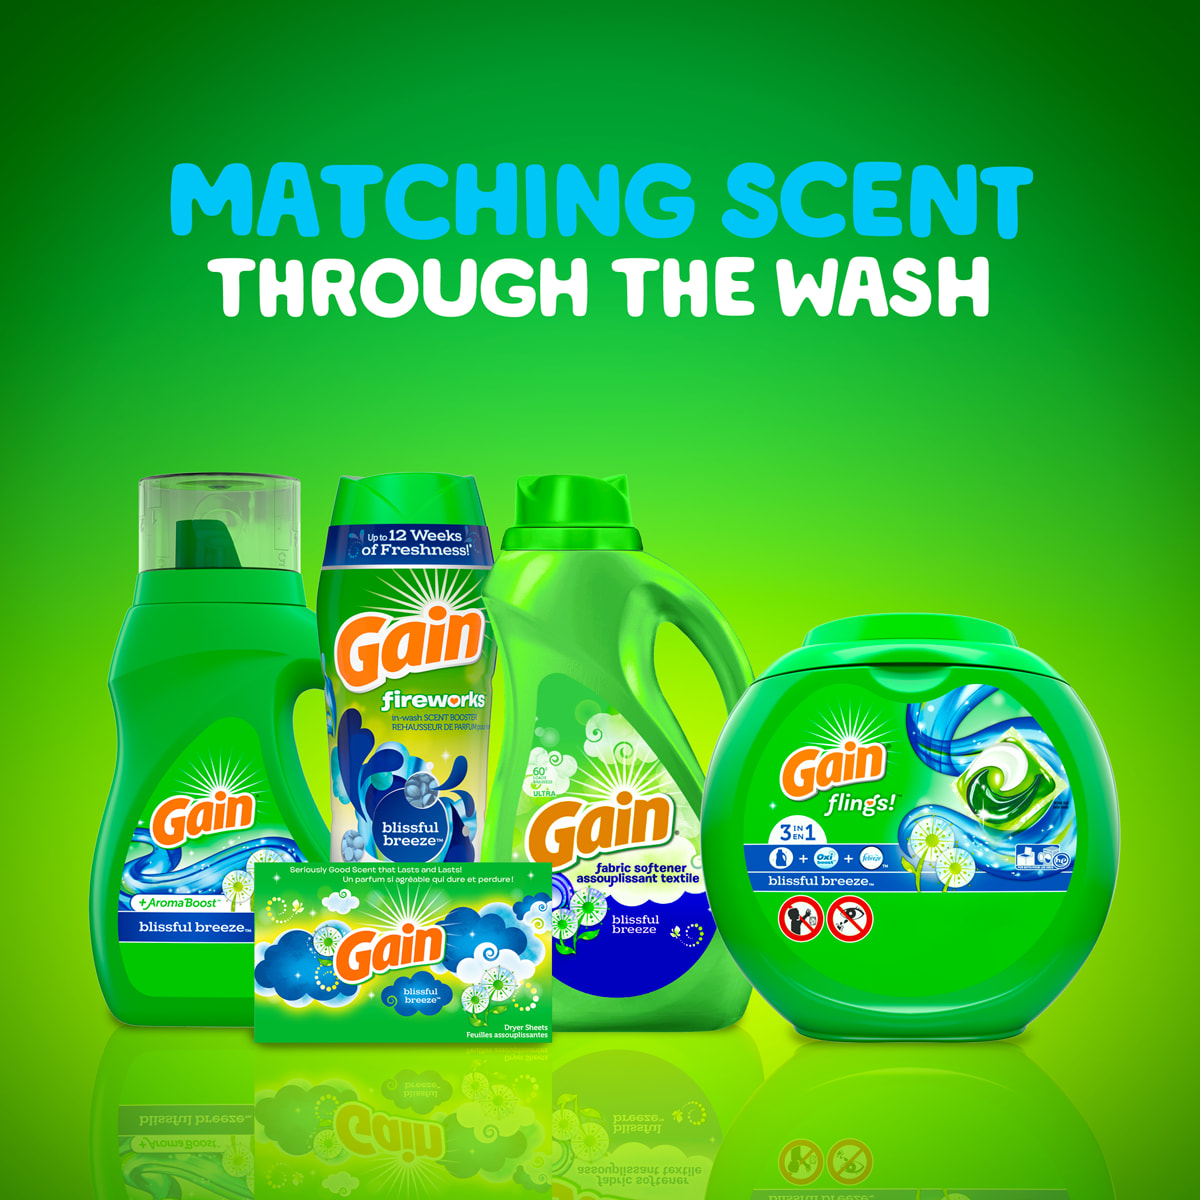 Gain Blissful Breeze product line matches scents throughout the wash